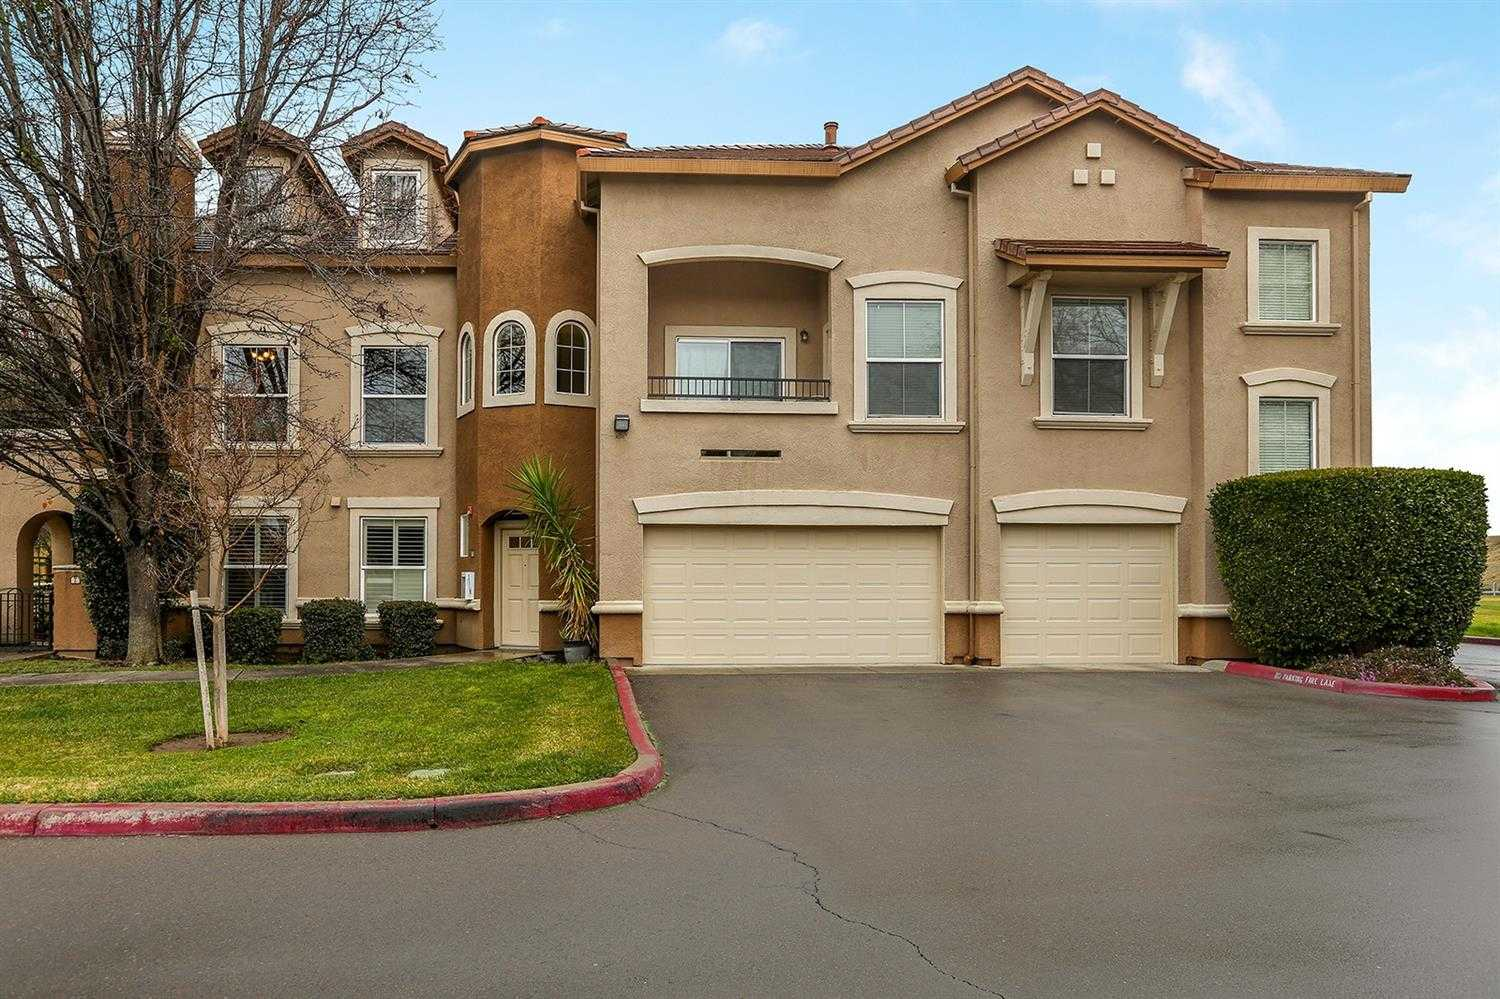 $324,900 - 2Br/2Ba -  for Sale in Riva On The River Condos, West Sacramento